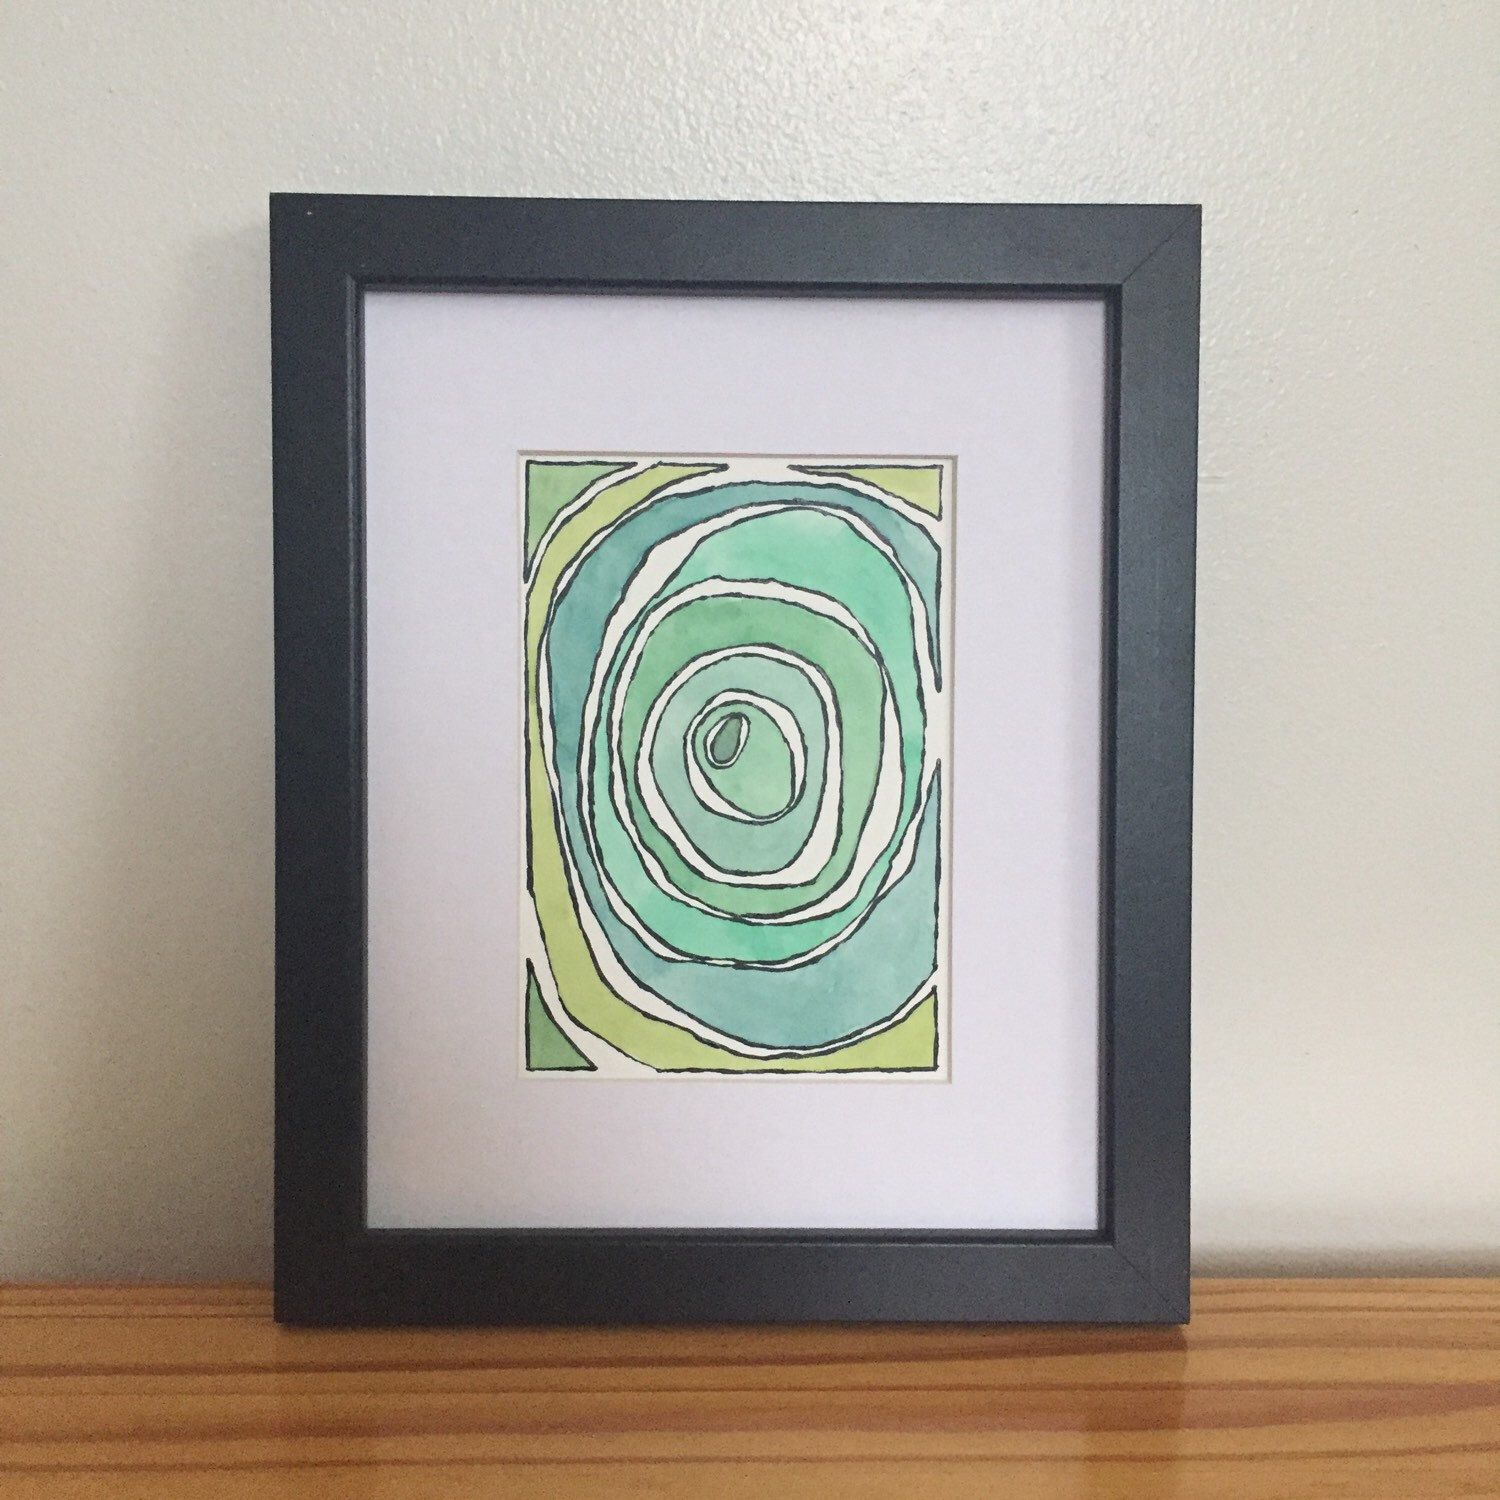 This abstract watercolor was just added to the shop! Matted and ready to be framed and displayed